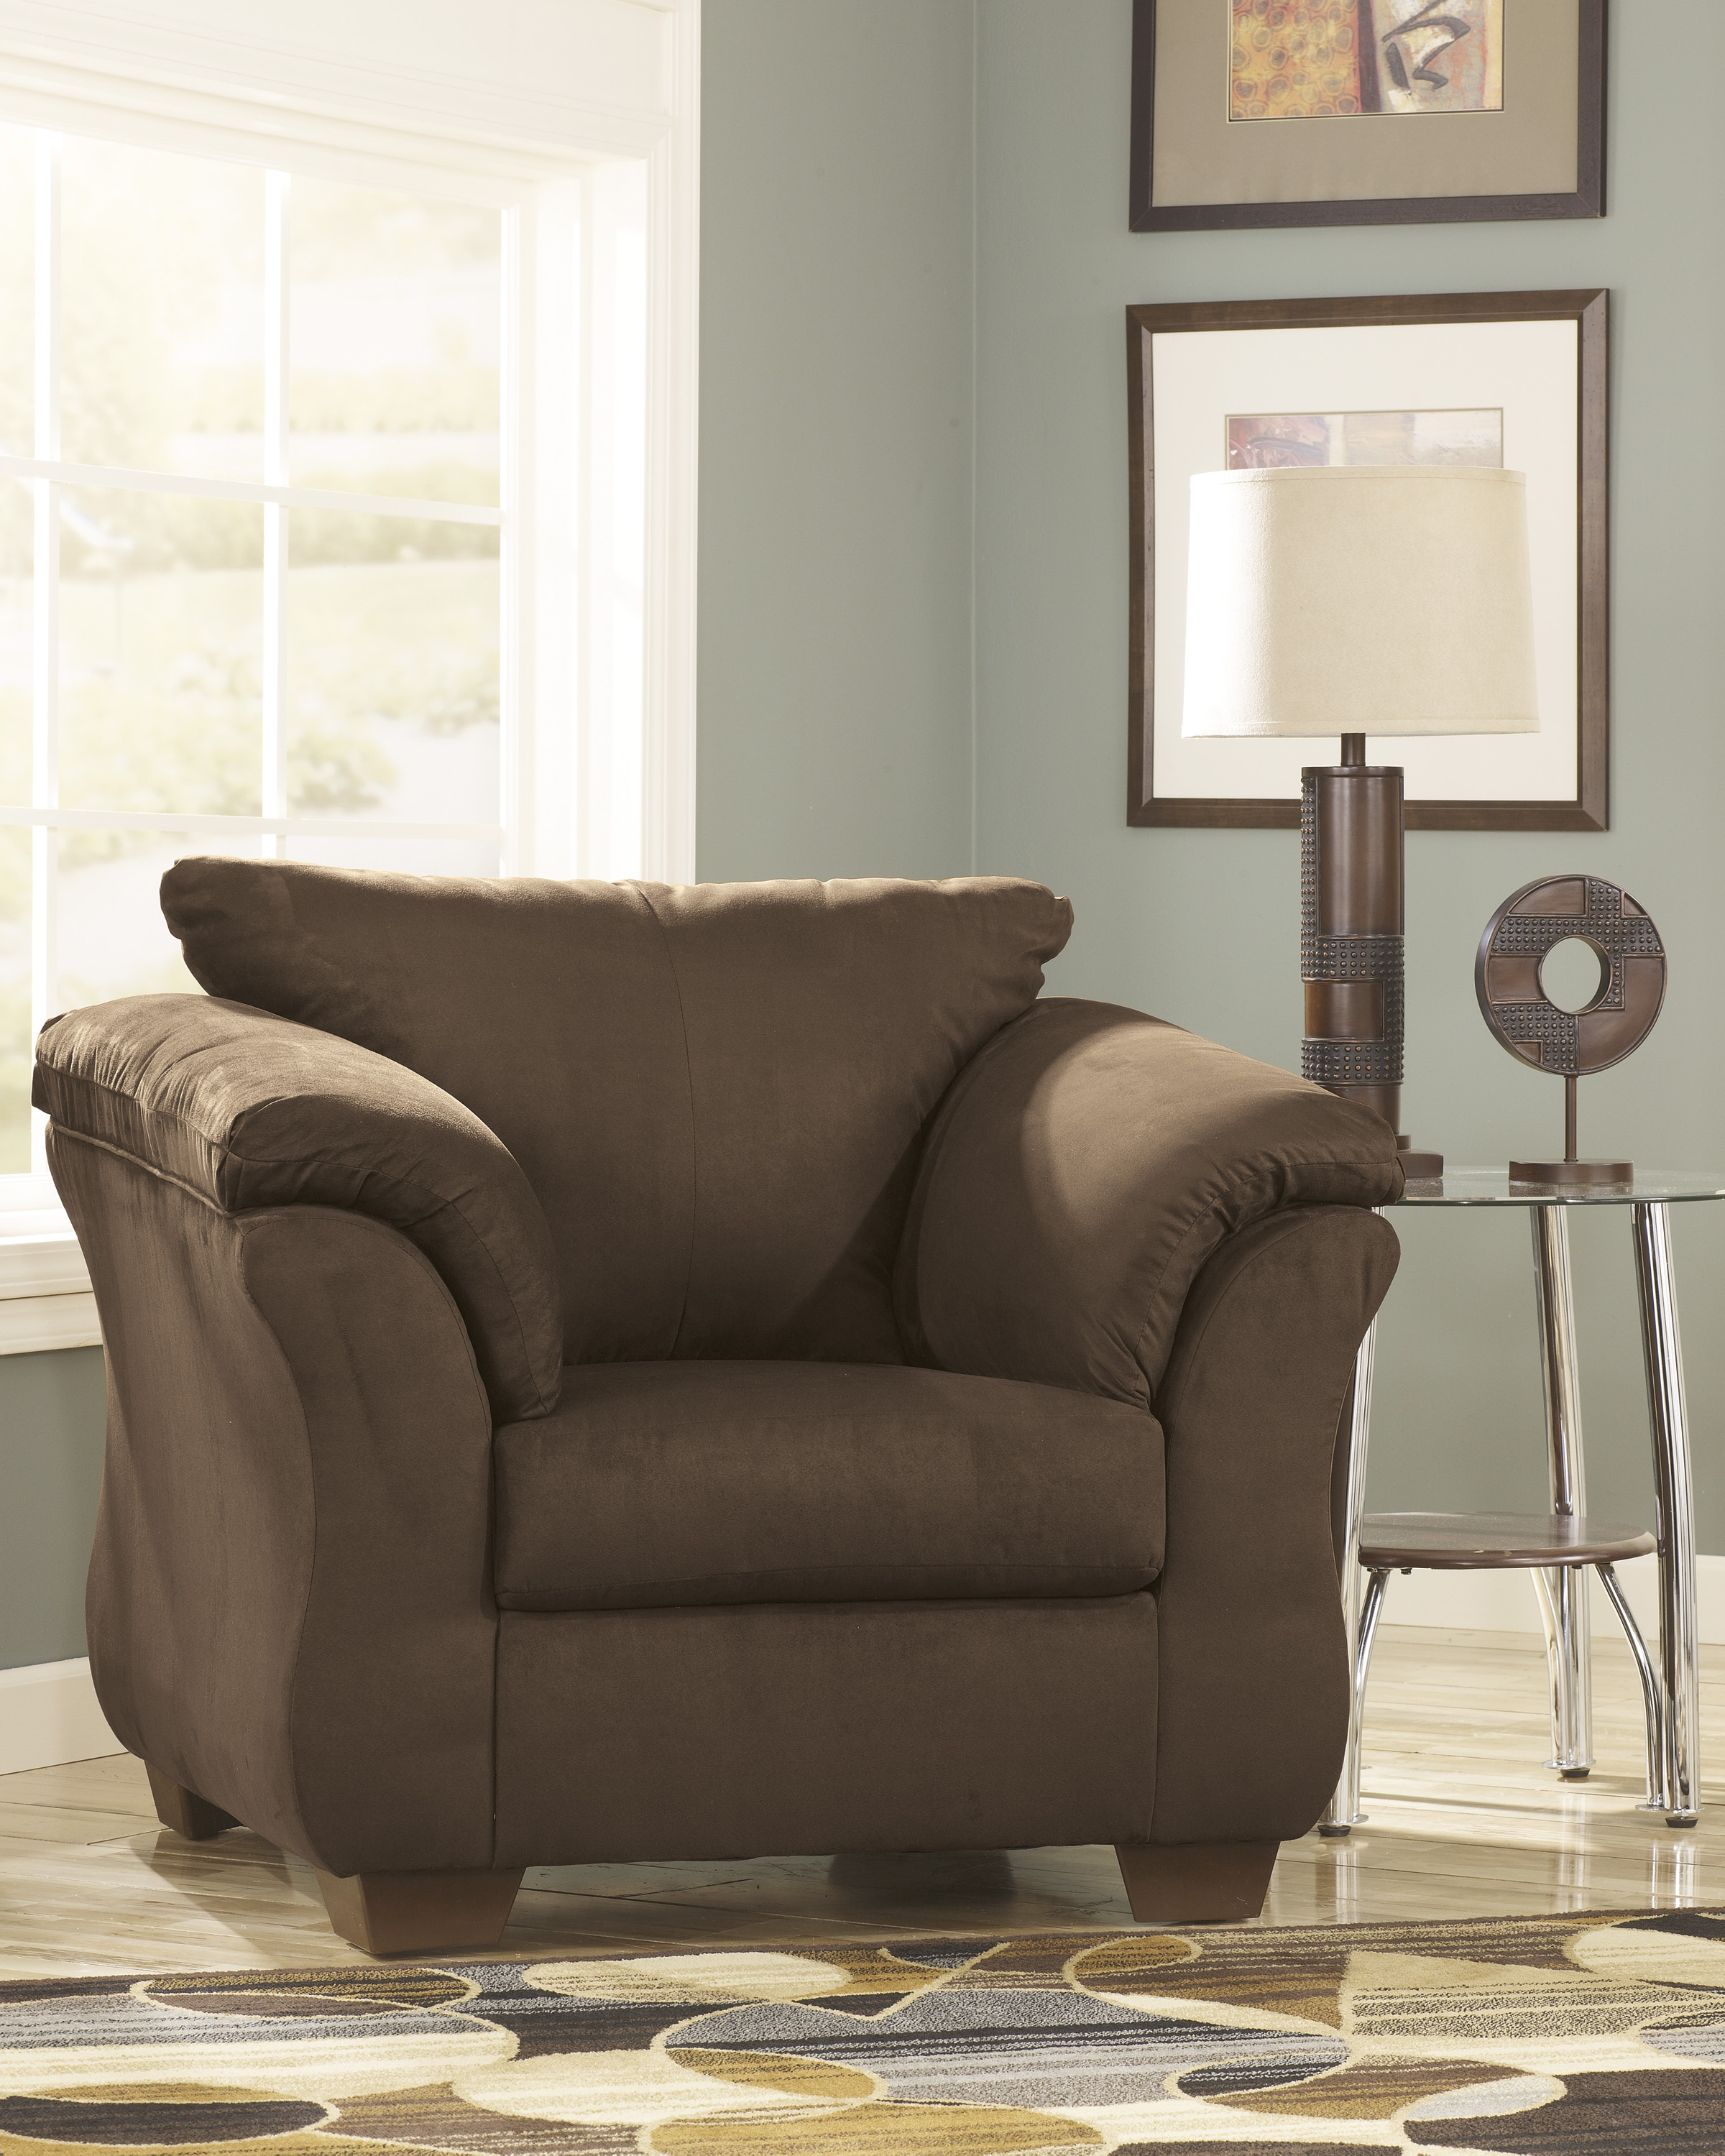 Darcy Cafe Accent Chair  / $12.99 A Week